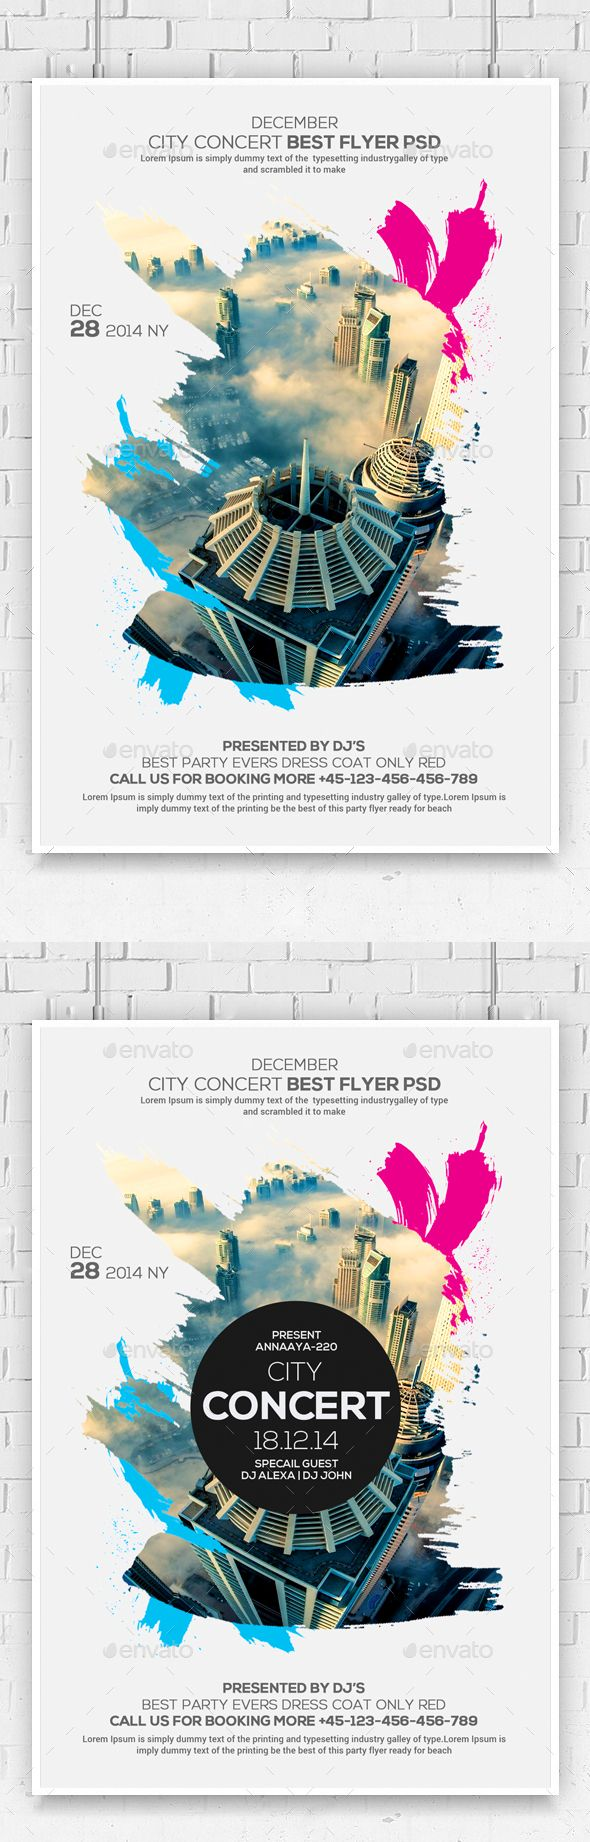 Urban City Flyer — Photoshop PSD #ambient #geometry • Download ➝ https://graphicriver.net/item/urban-city-flyer/18924092?ref=pxcr